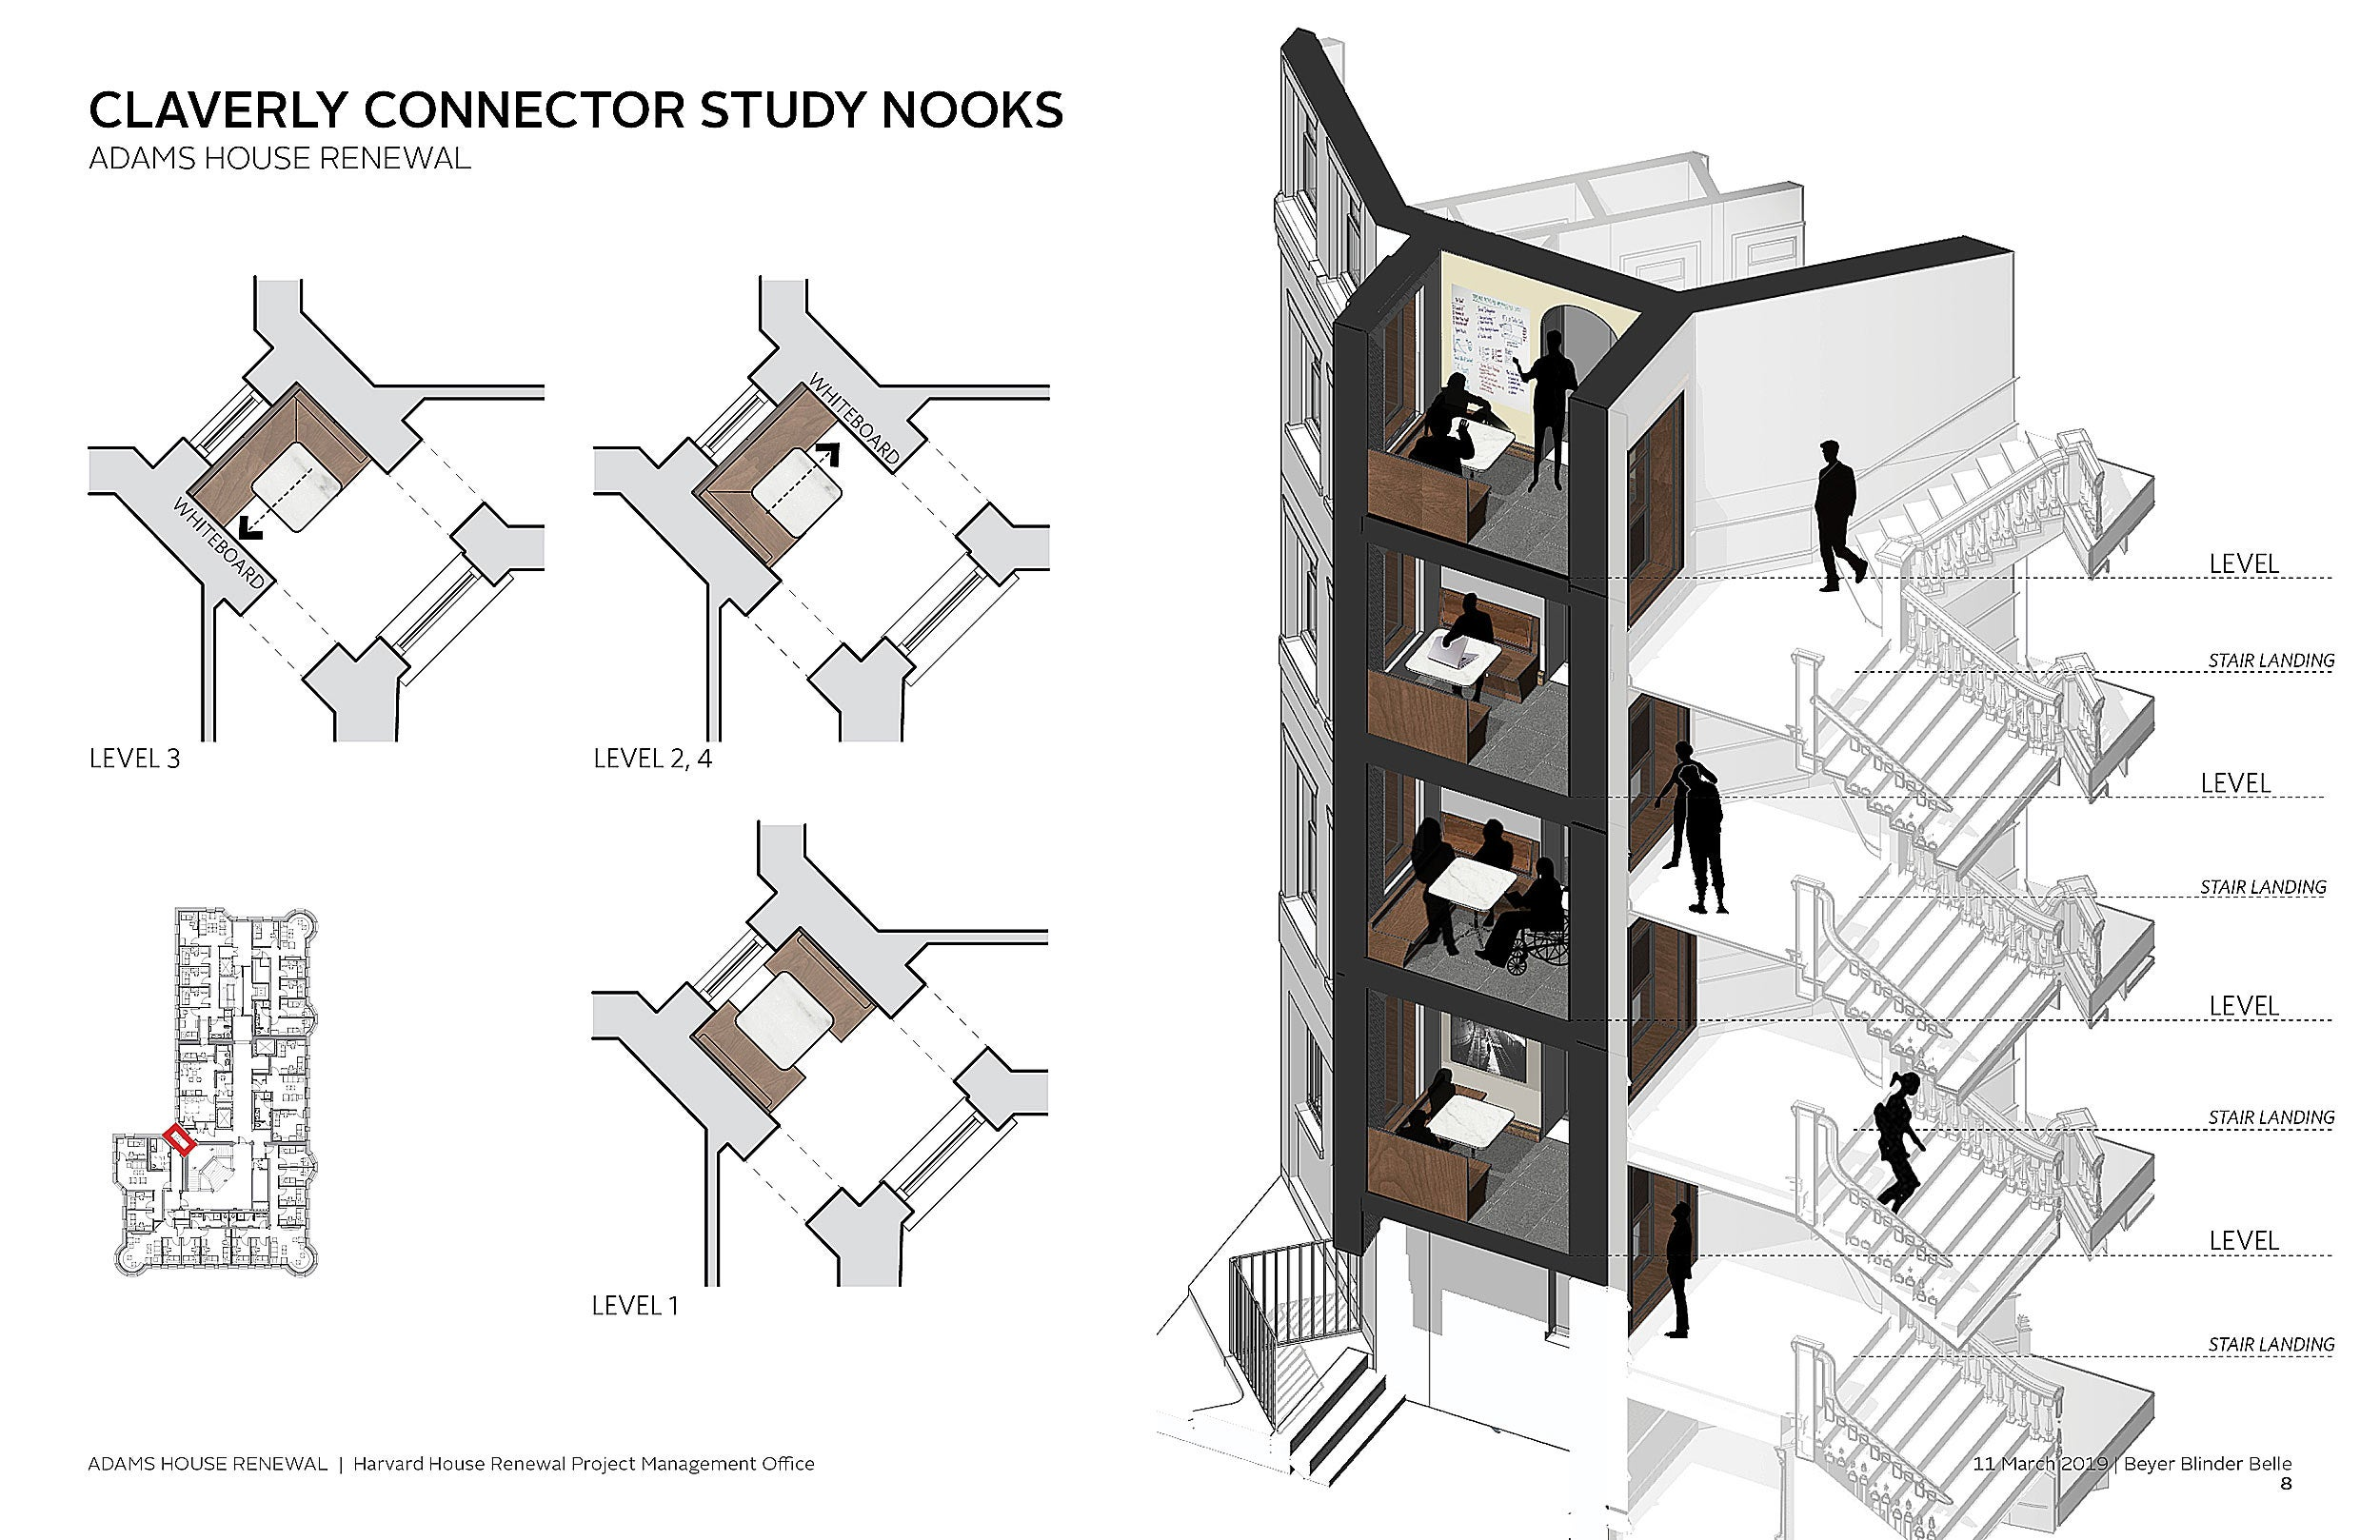 A design layout of study nooks at Adams House.